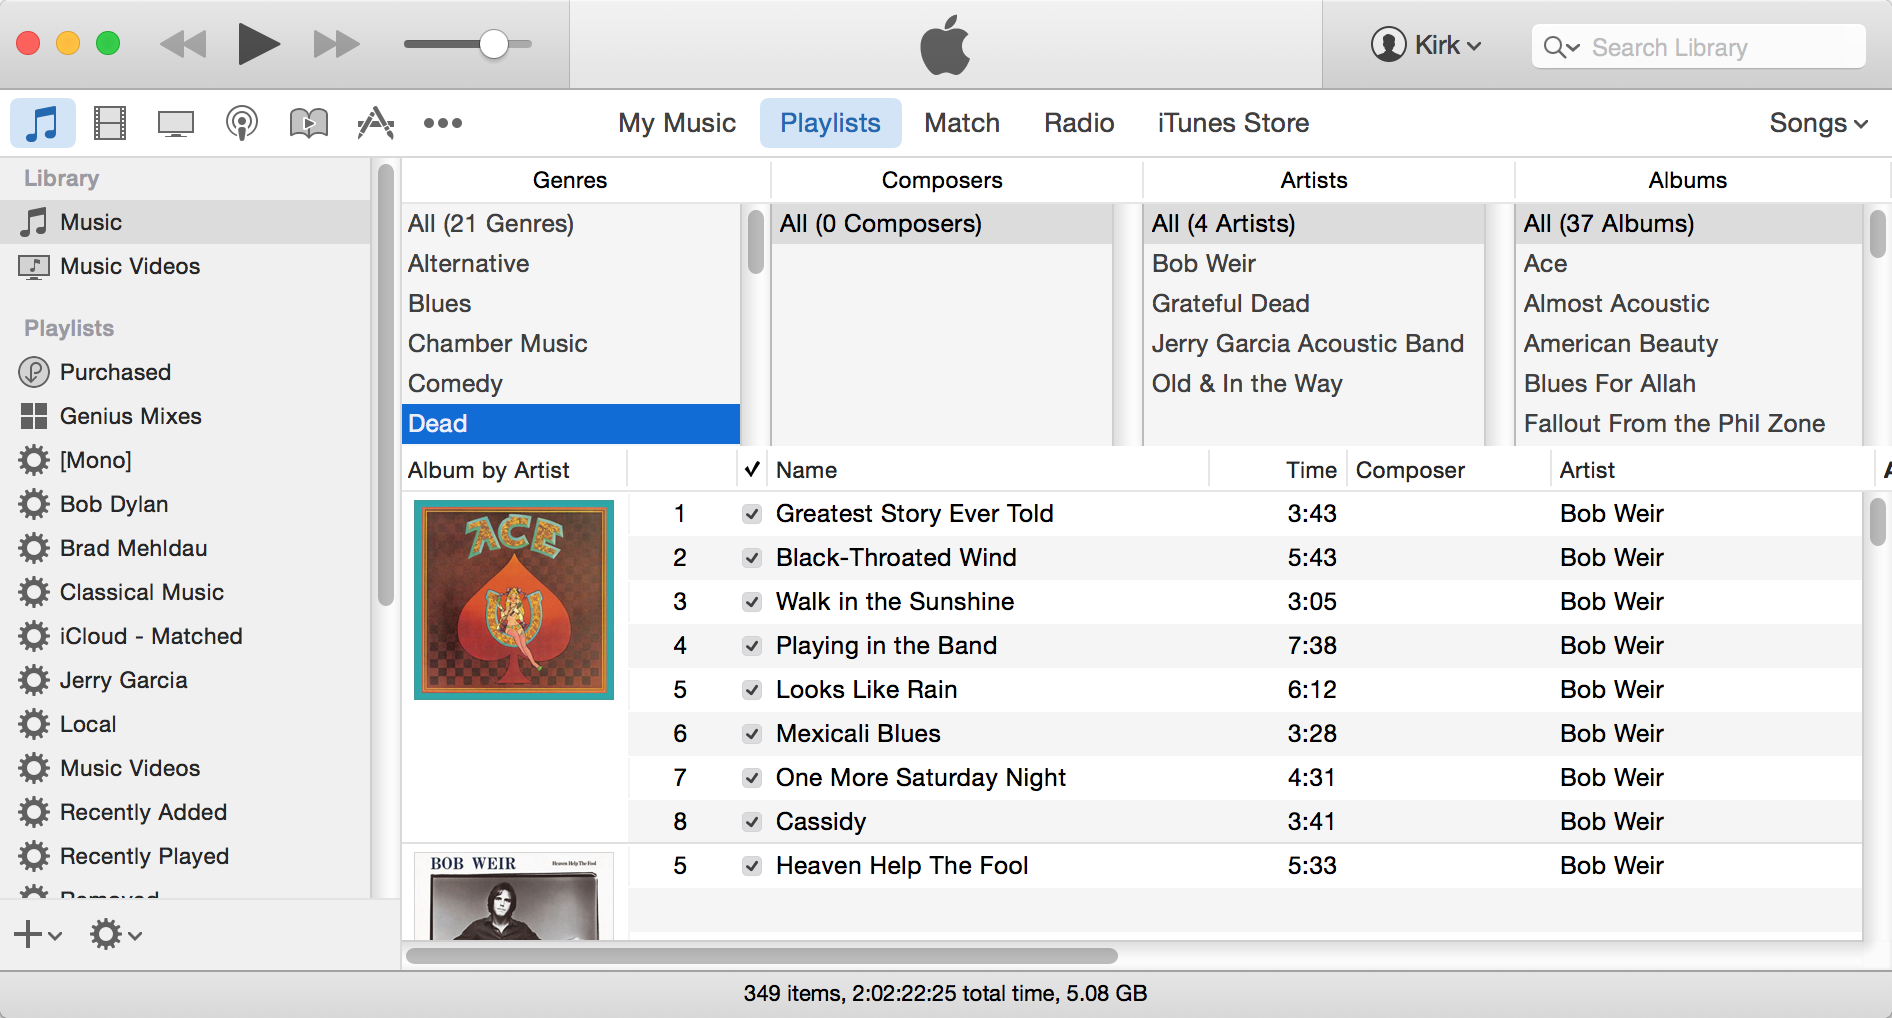 How To View Your Content In Itunes 12 The Mac Security Blog